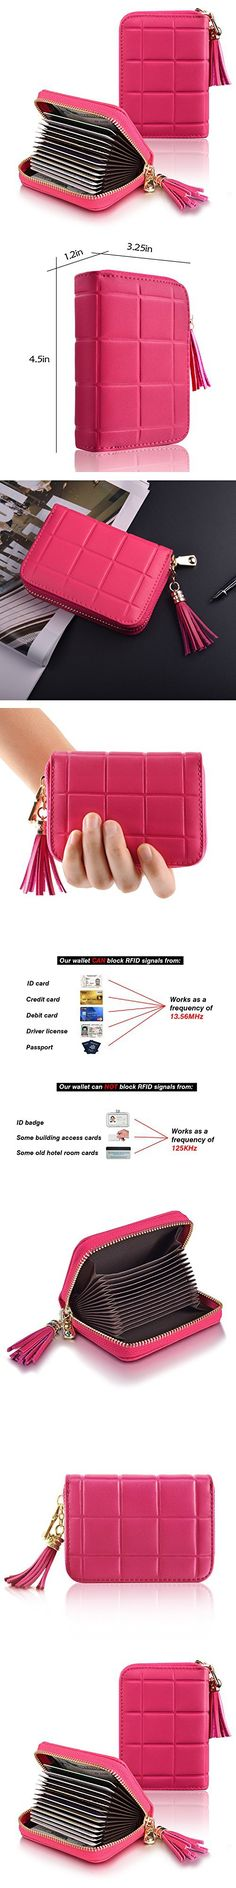 Genuine Leather Accordion Zipper Wallet for Men and Women, Security Card Holder for Travel and Work, RFID Blocking Wallet for Credit Cards, Business Cards, Driver License, and Money Pendant Rose Red